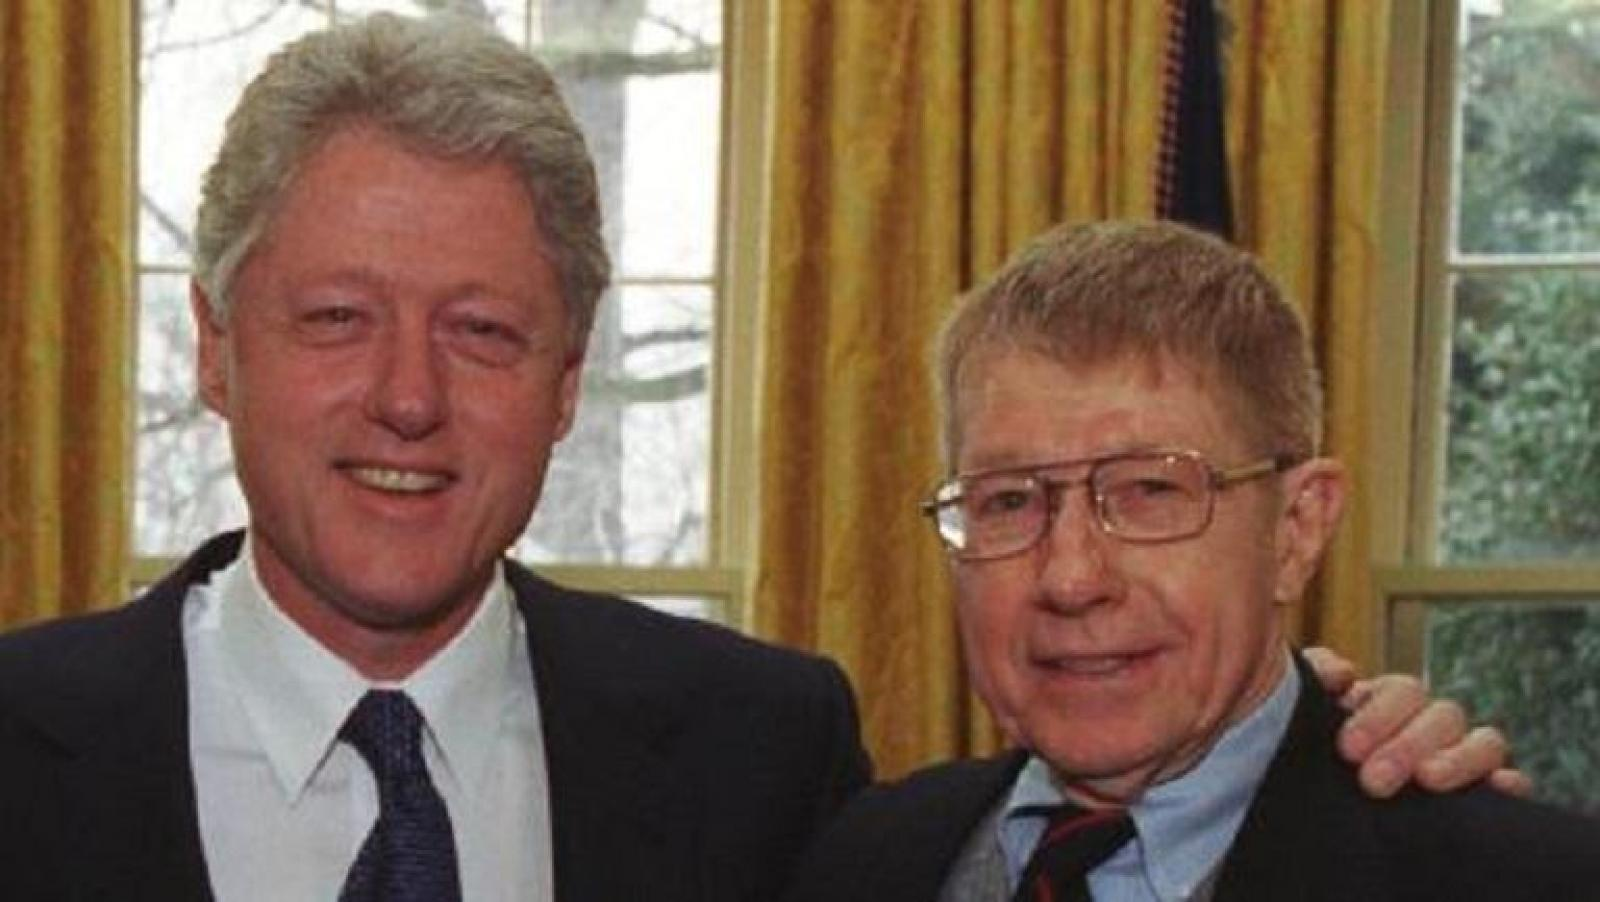 Giles and Bill Clinton